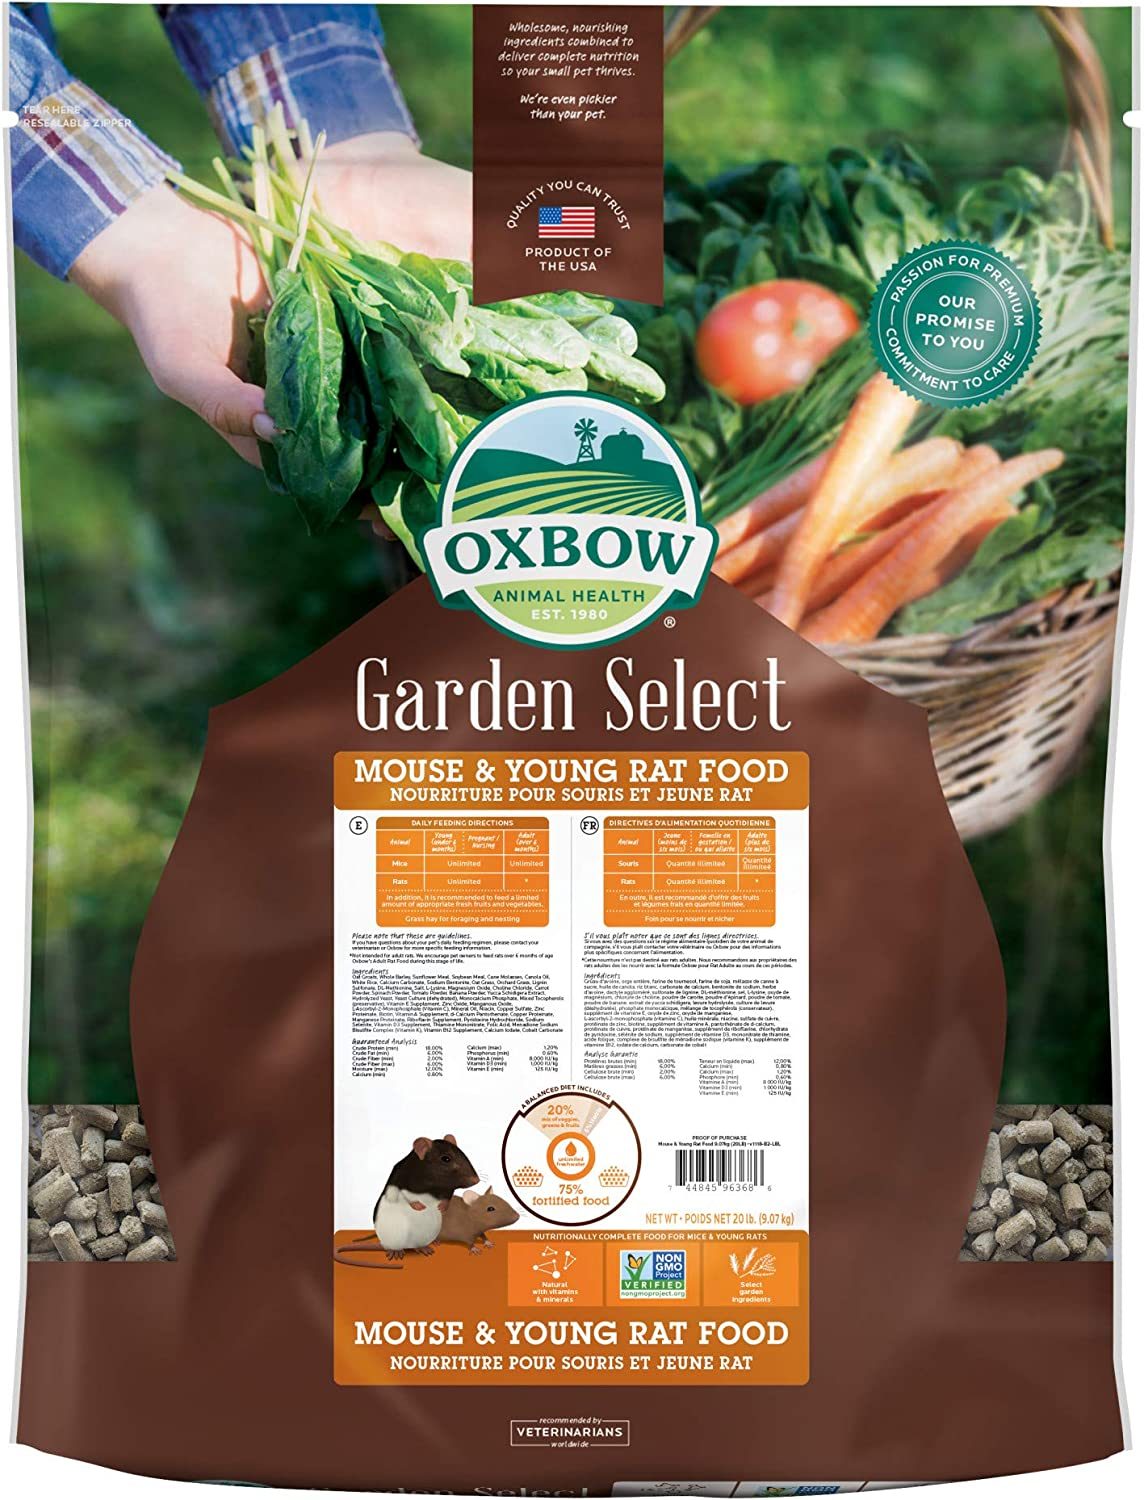 Oxbow Animal Health Garden Select Mouse and Young Rat Food, Garden-Inspired Recipe for Young Rats and Mice of All Ages, Non-GMO, Made in The USA, 20 Pound Bag